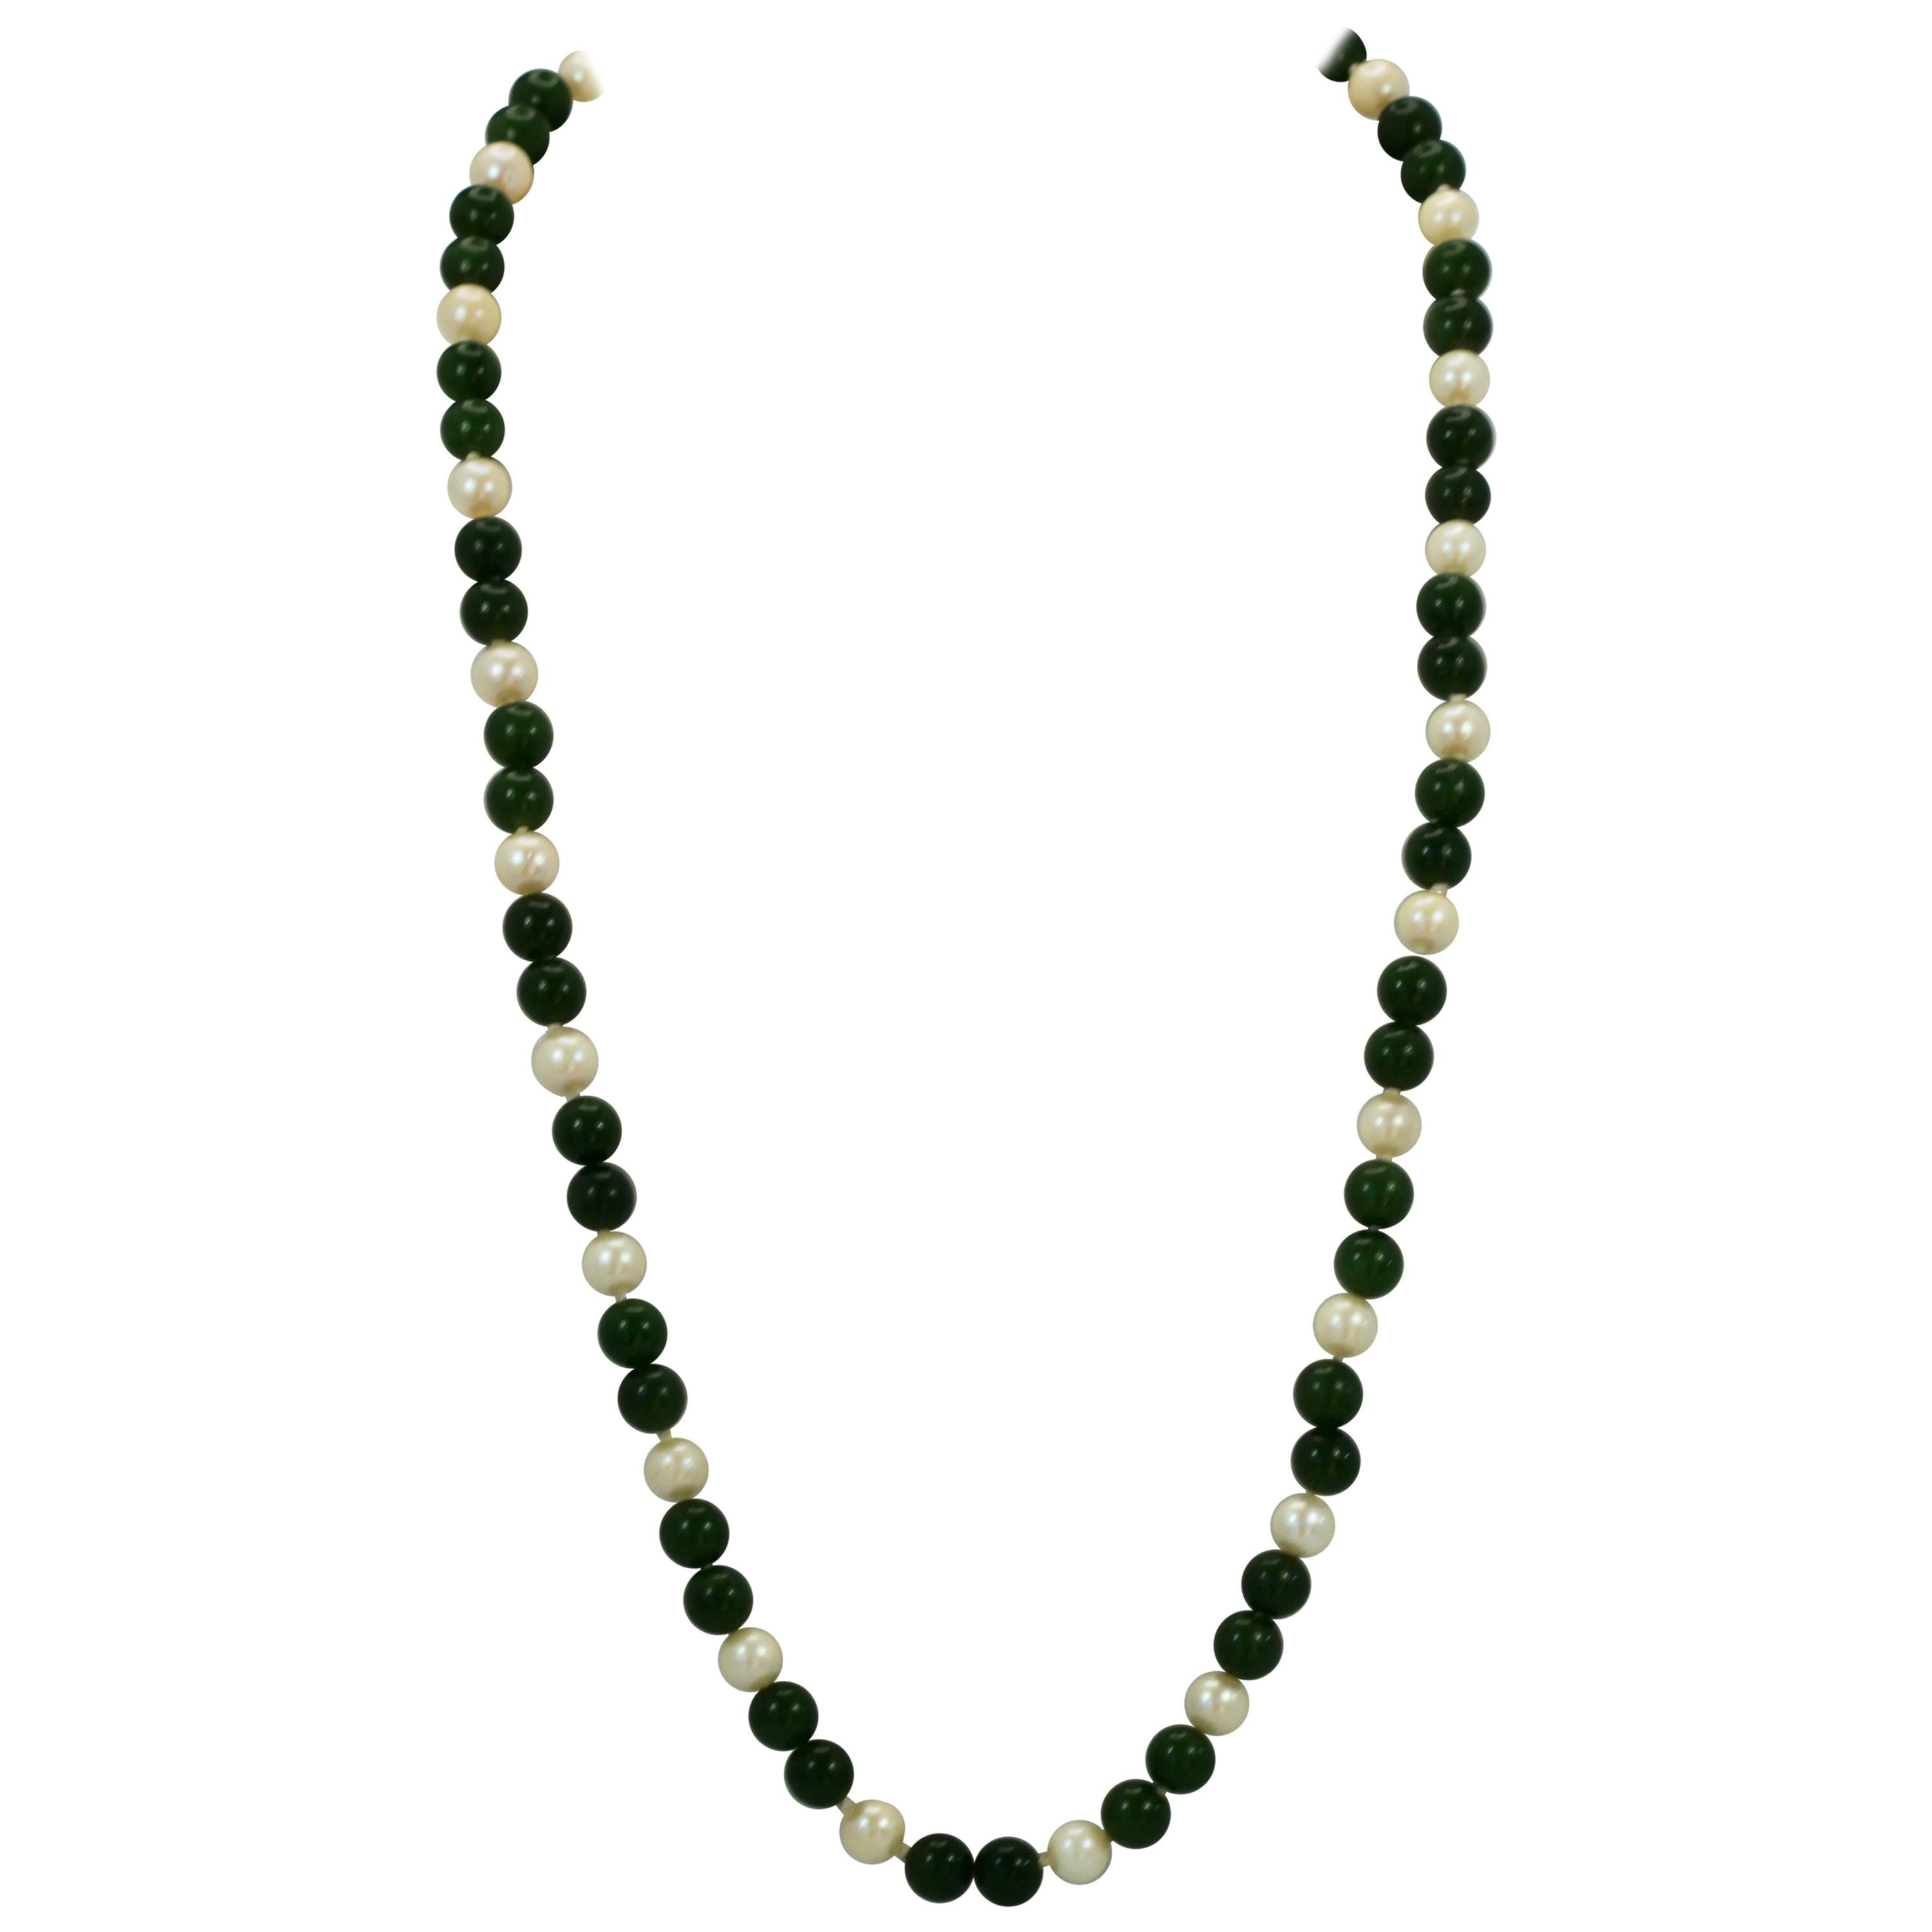 Nephrite Jade and Saltwater Pearl Necklace